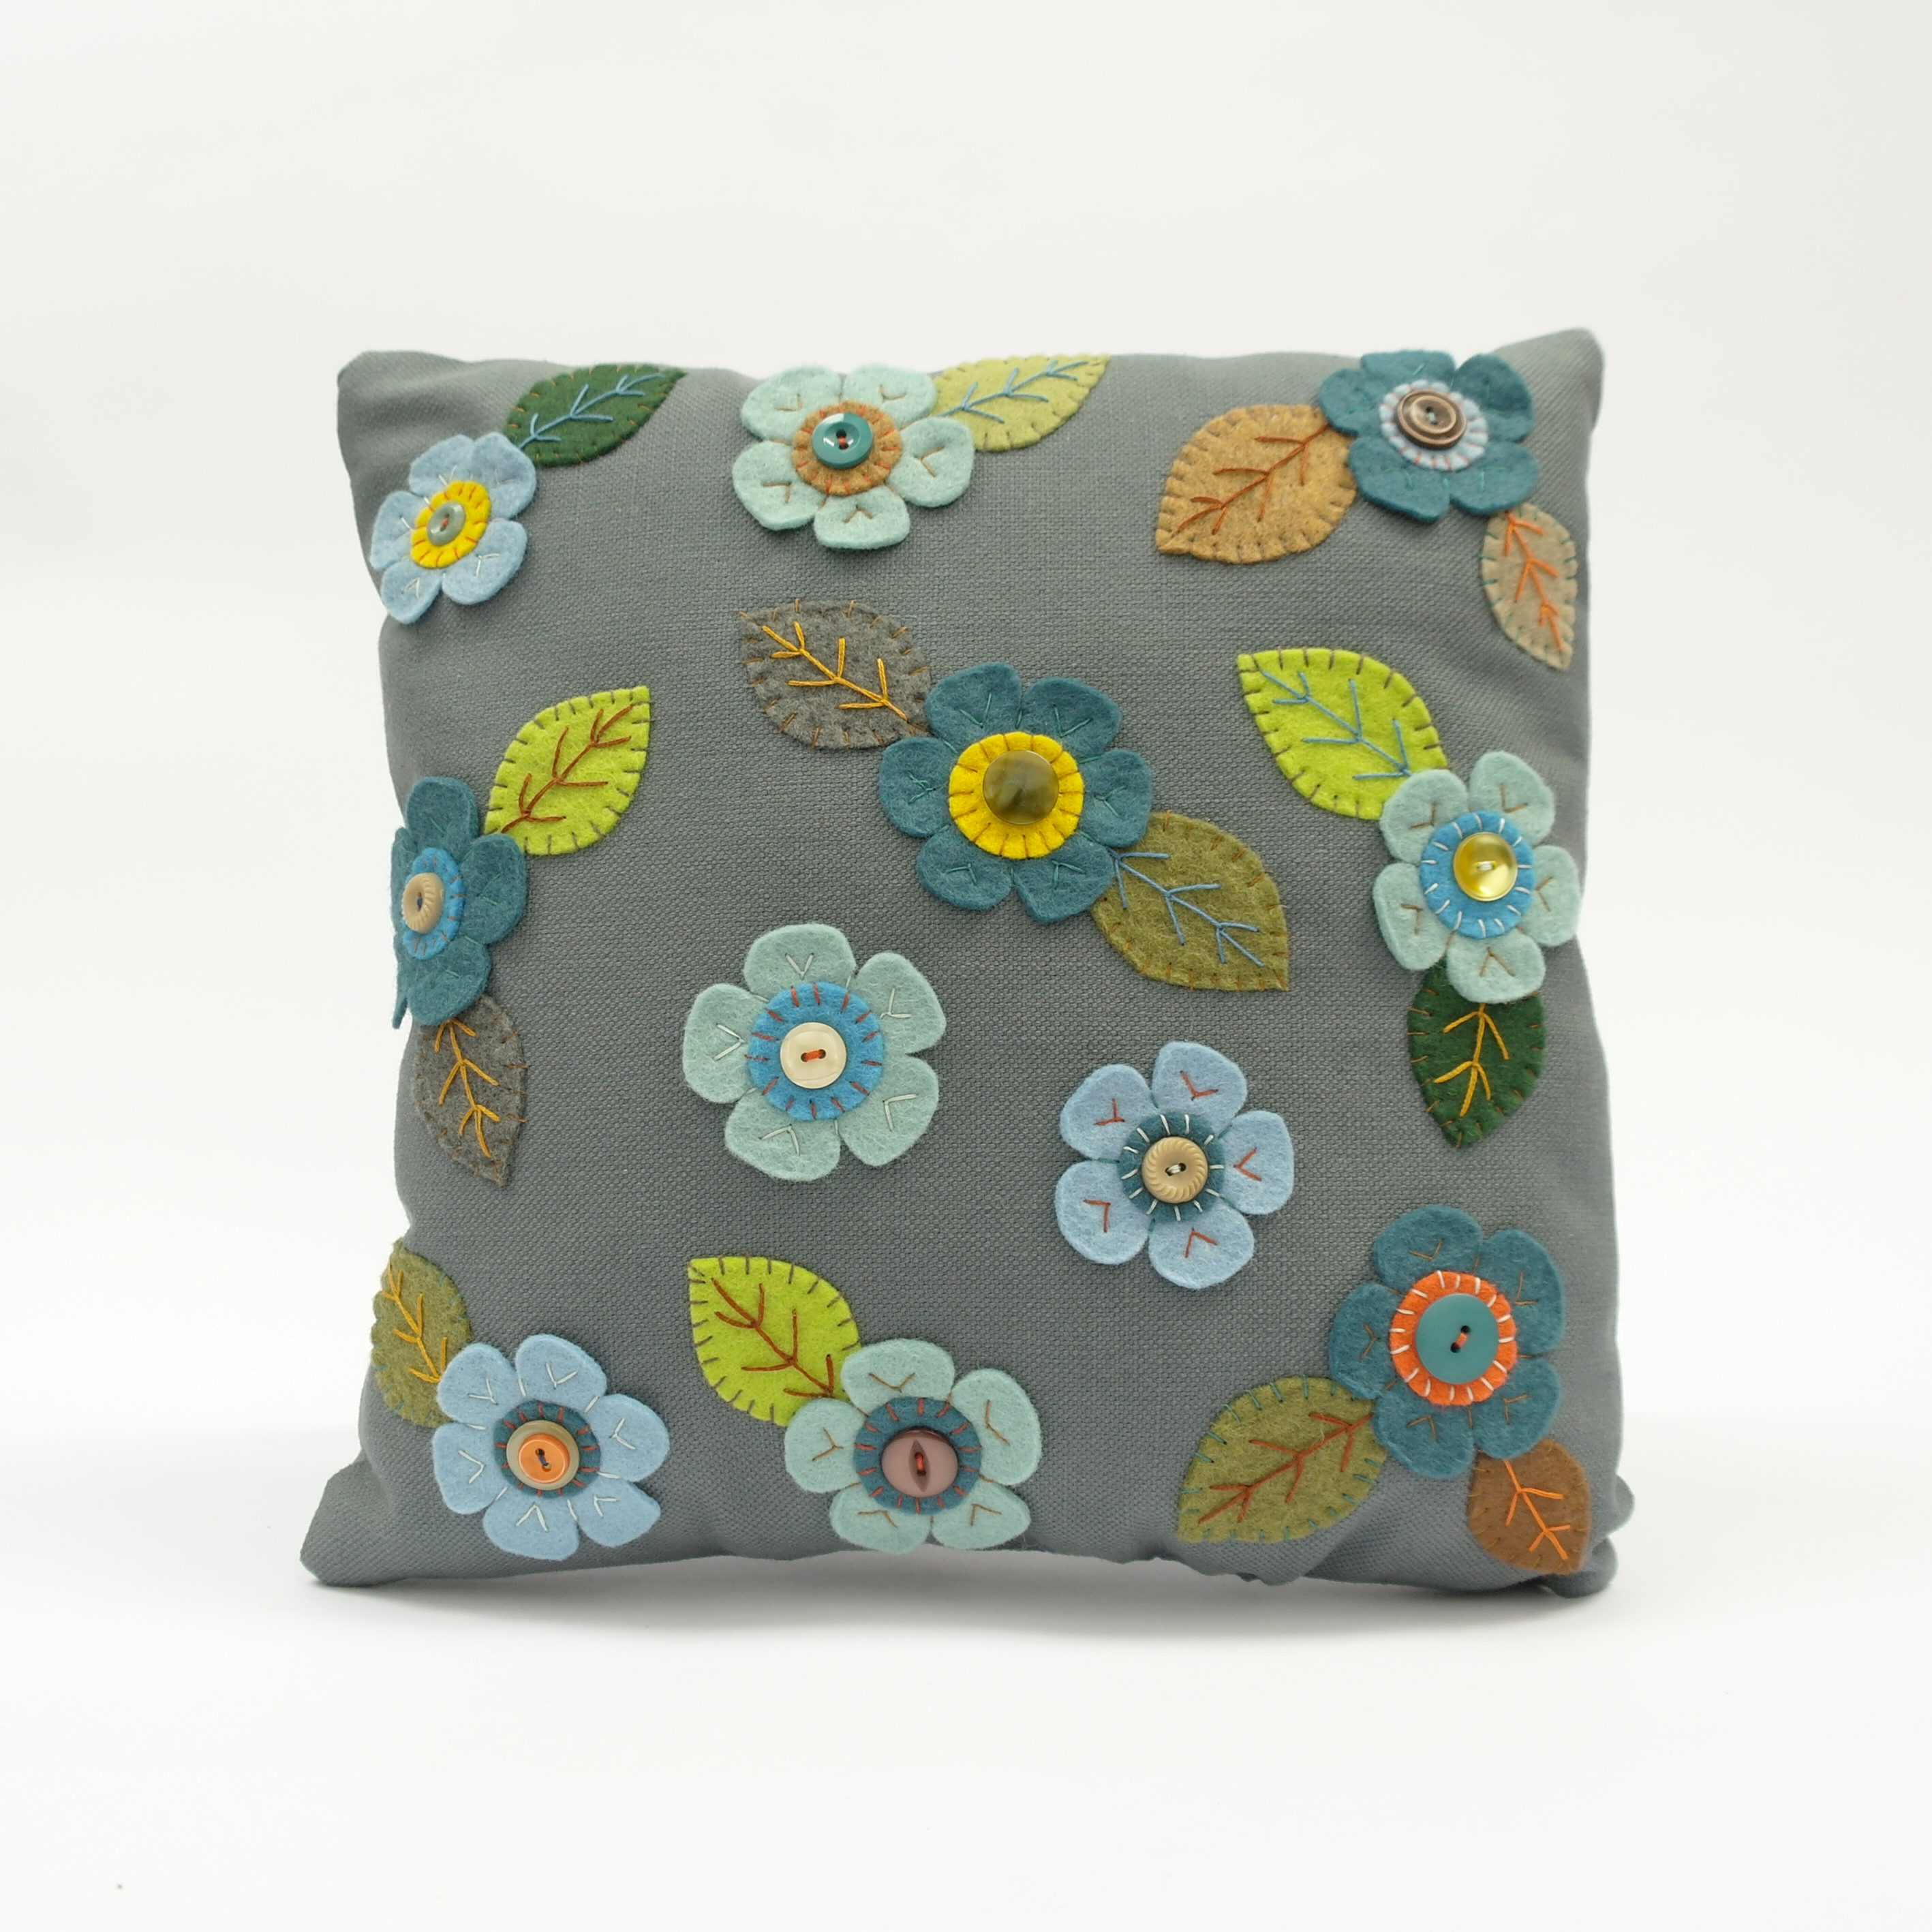 Floral Stitched Cushions - Square